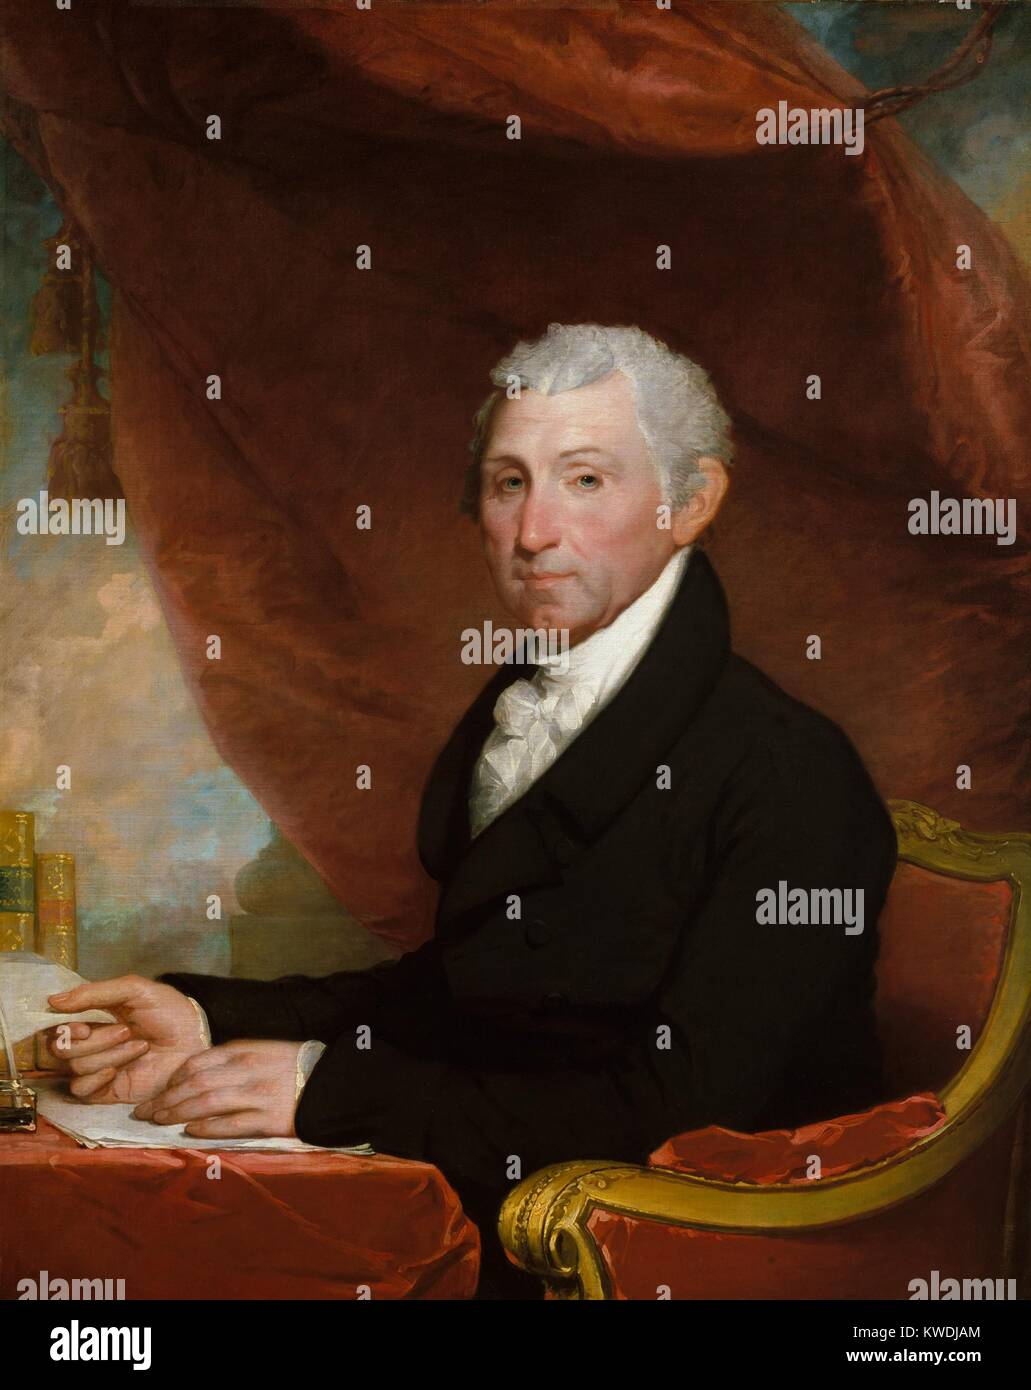 JAMES MONROE, by Gilbert Stuart, 1820-22, American painting, oil on canvas. The fifth President of the United States - Stock Image